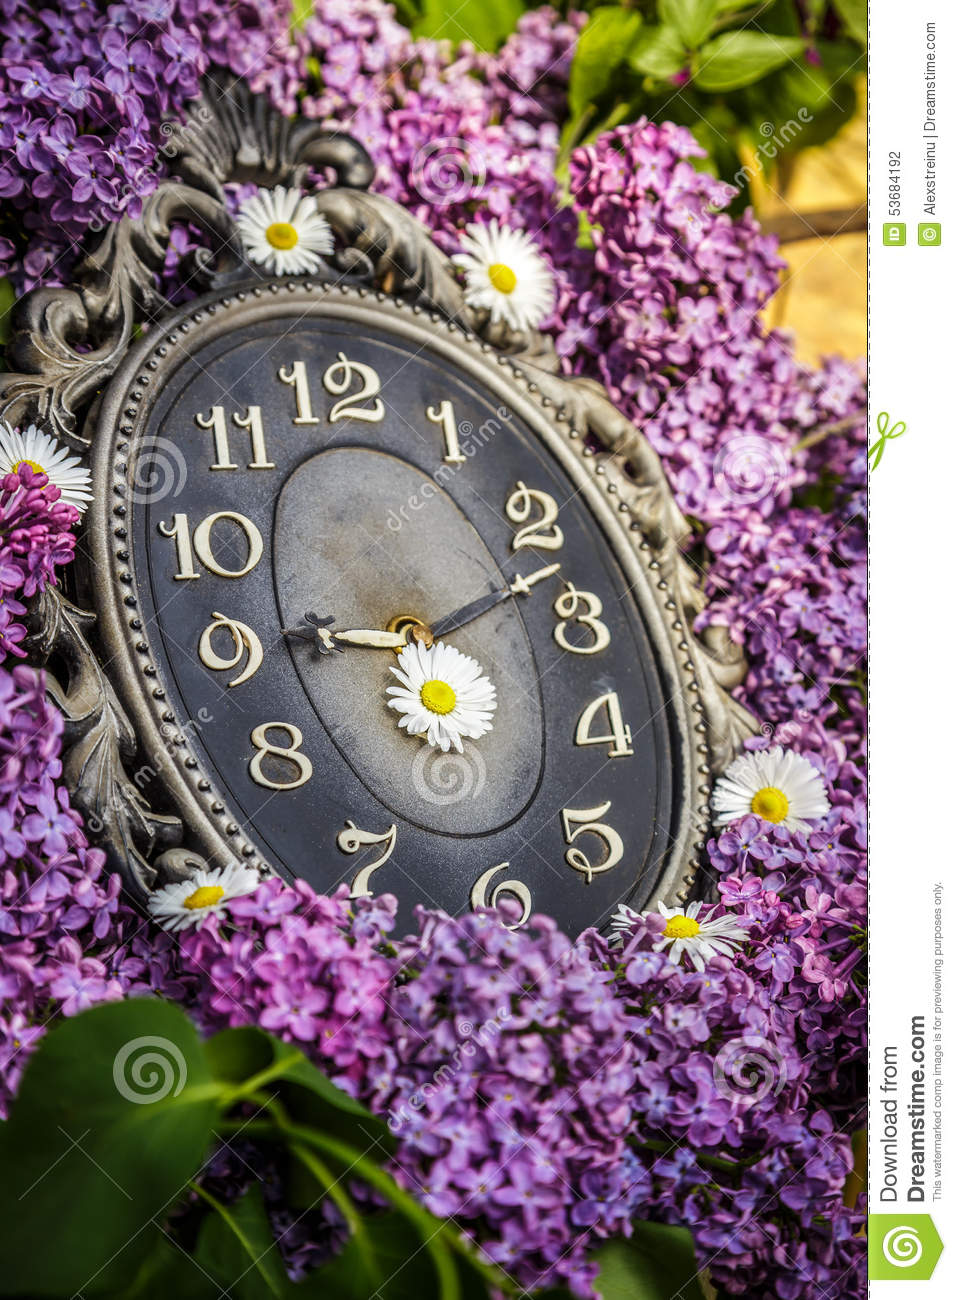 Clock surrounded by spring flowers. Shallow depth of field with selective focus on clock. Lilac flowers